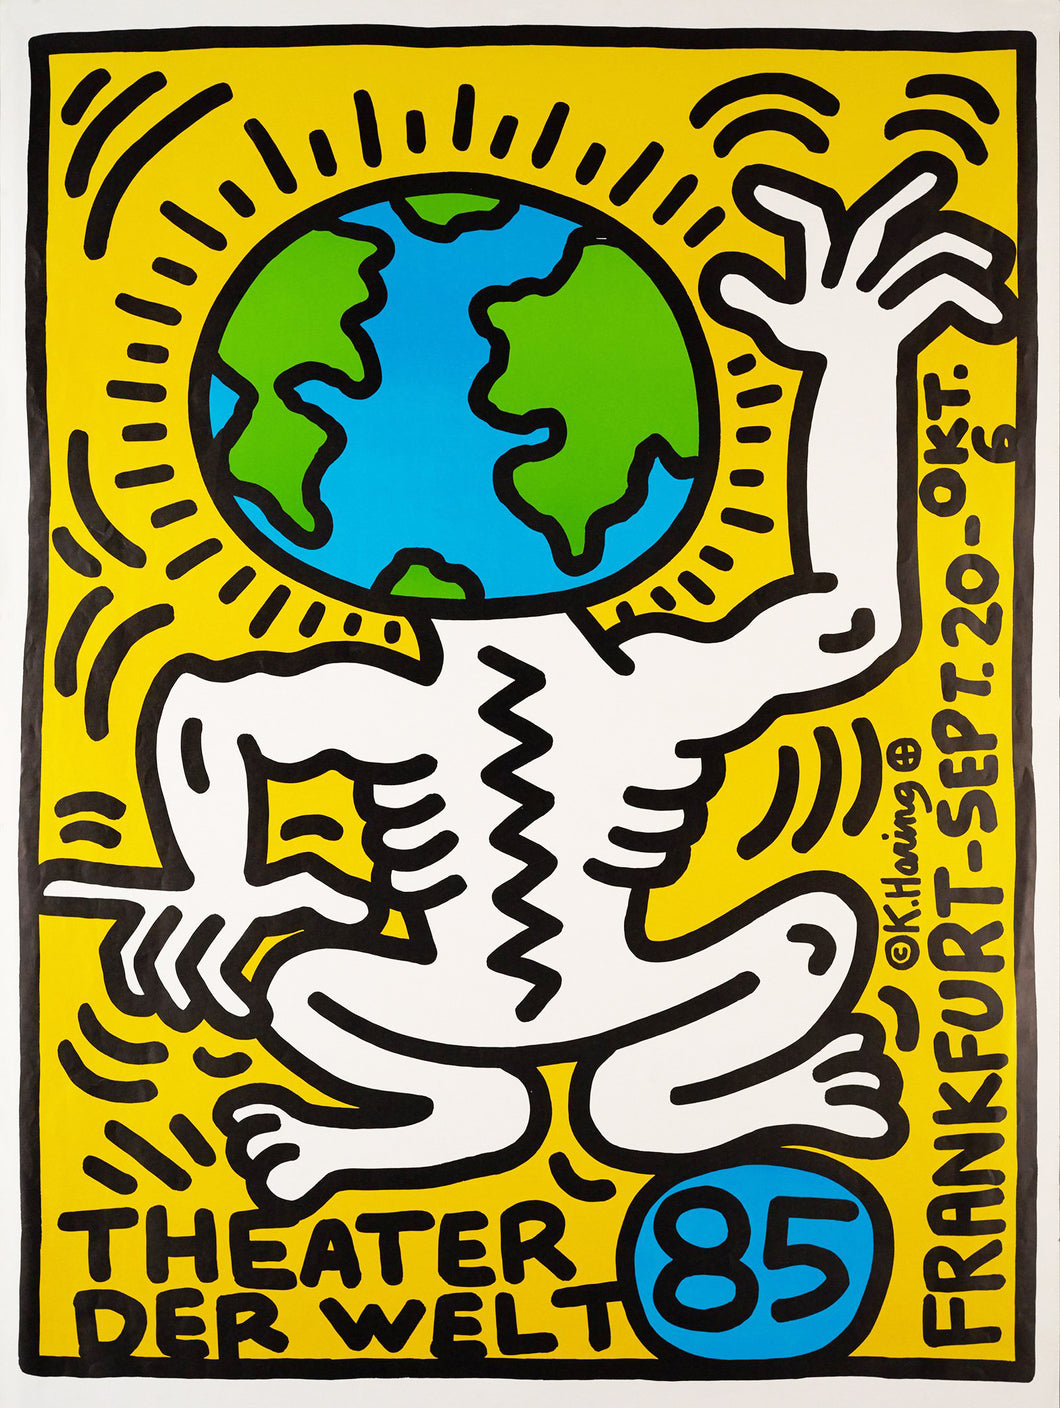 Keith Haring 'Theater der Welt', Original Pop Art Poster, Plate Signed, 1985